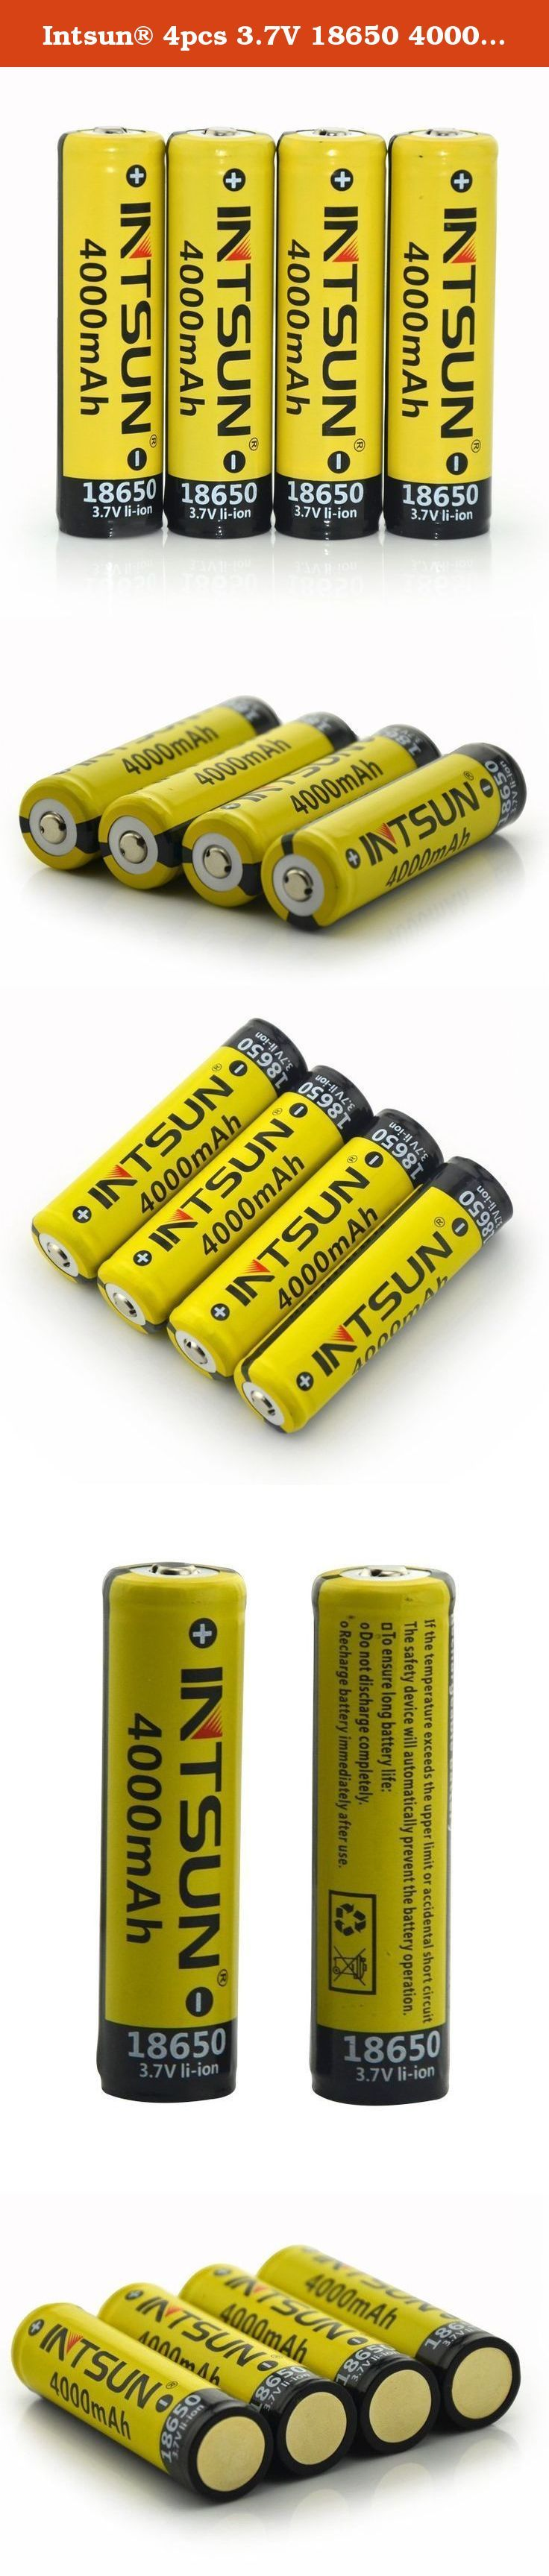 Intsun® 4pcs 3.7V 18650 4000mah Rechargeable Li-ion Battery with PCB for LED Flashlight, Headlamps, search light lamp, etc (4xBattery). Features: * High quality and durable. * No memory effect ,Environmentally friendly. * Provides excellent continuous power sources to your device. * This battery has an extra long life for all your battery powered devices. * With overcharge / discharge protection function that you can use it without worry. * Can be used in laser pointer, Led Flashlights...